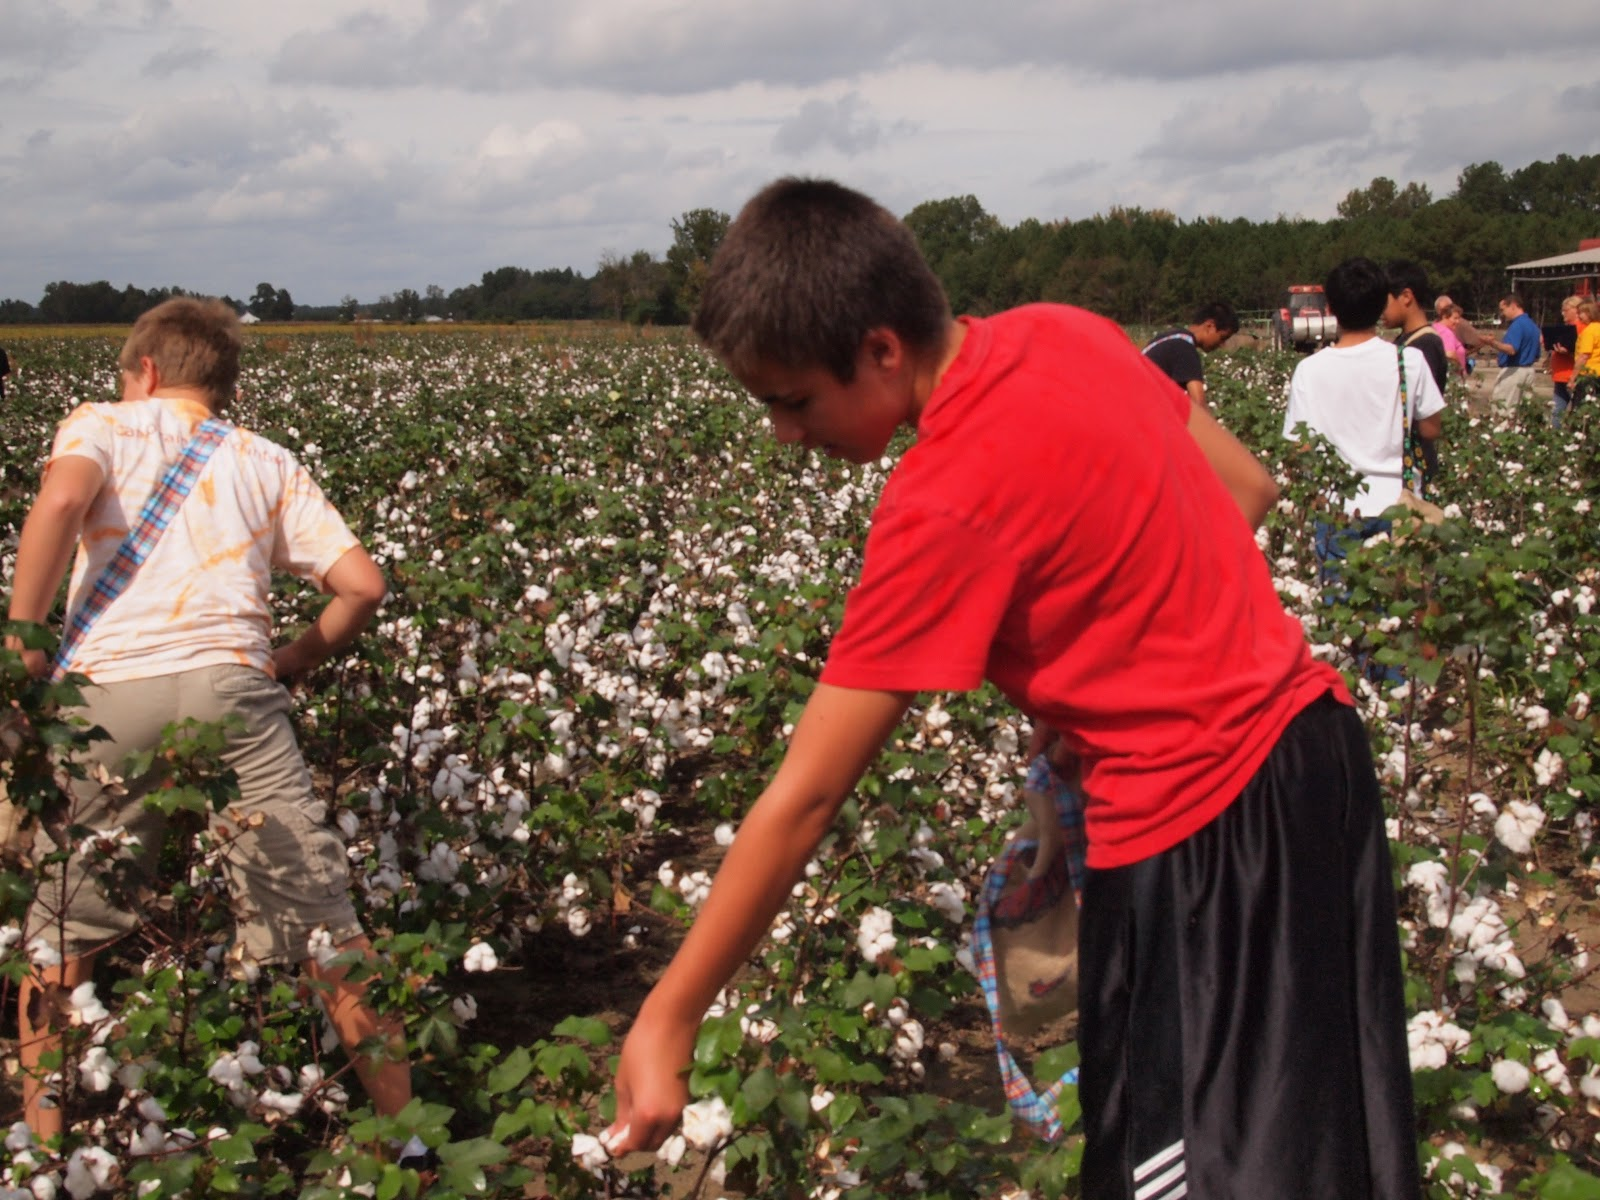 81 School Cancels Black History Cotton Picking Field Trip Students